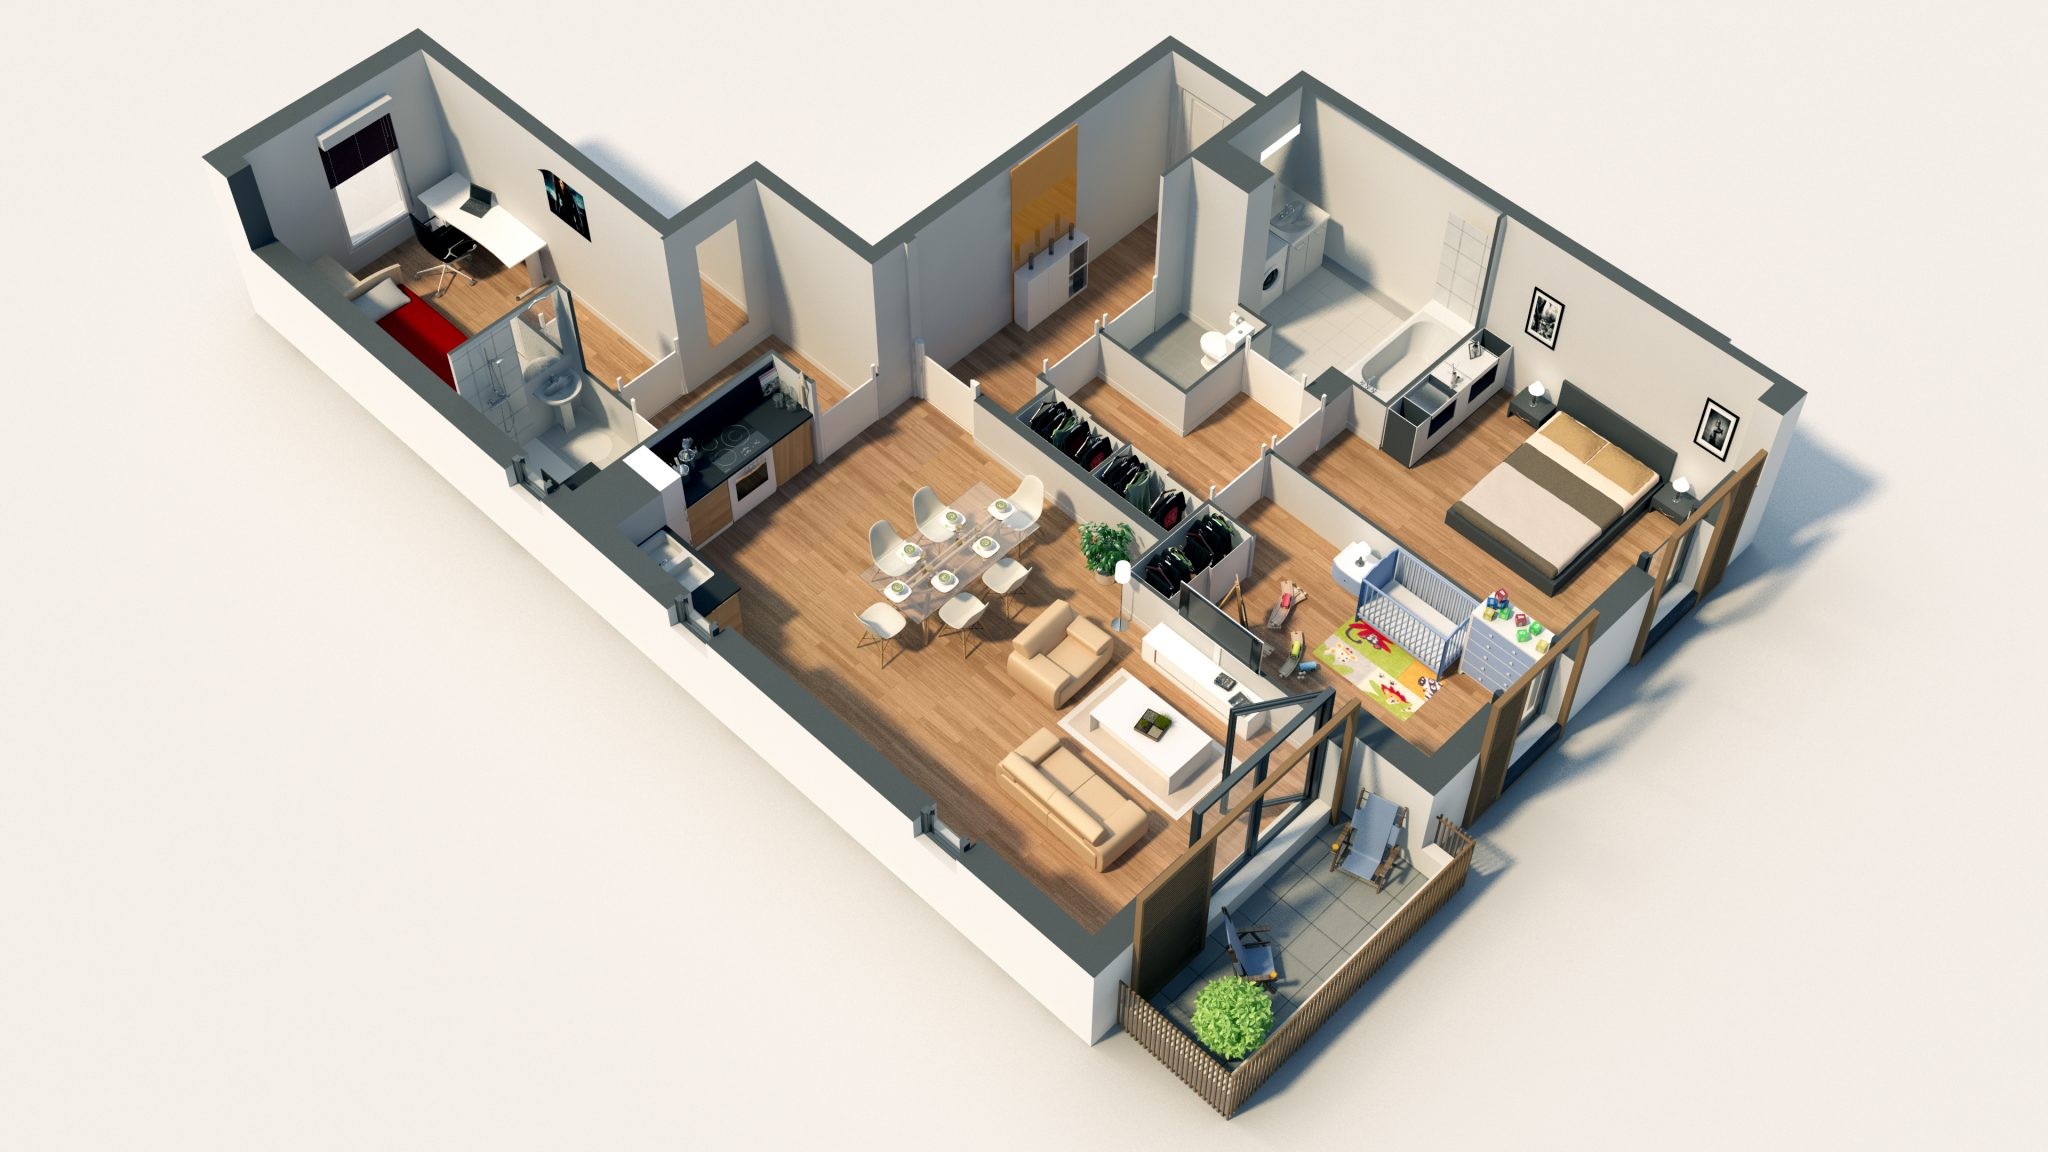 Programme plan 3d l 39 impression 3d for Plan maison interieur 3d